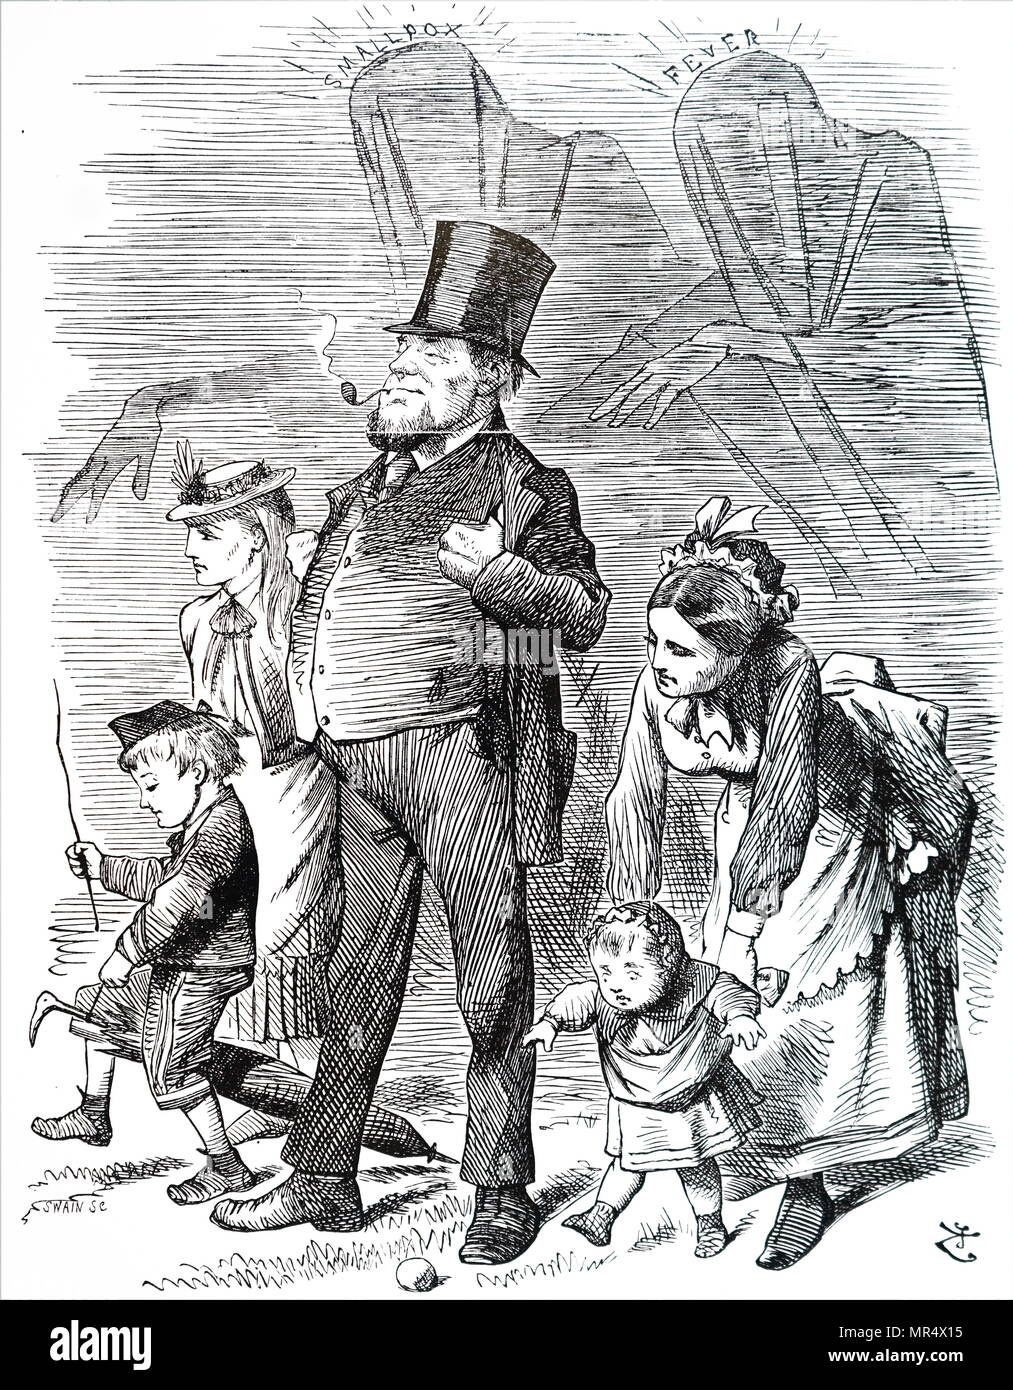 Cartoon commenting on public apprehension about the possible danger if a fever hospital was built at Hampstead close to the Heath which was a great lung and playground for Londoners. Illustrated by John Tenniel (1820-1914) an English illustrator, graphic humourist, and political cartoonist. Dated 19th century - Stock Image